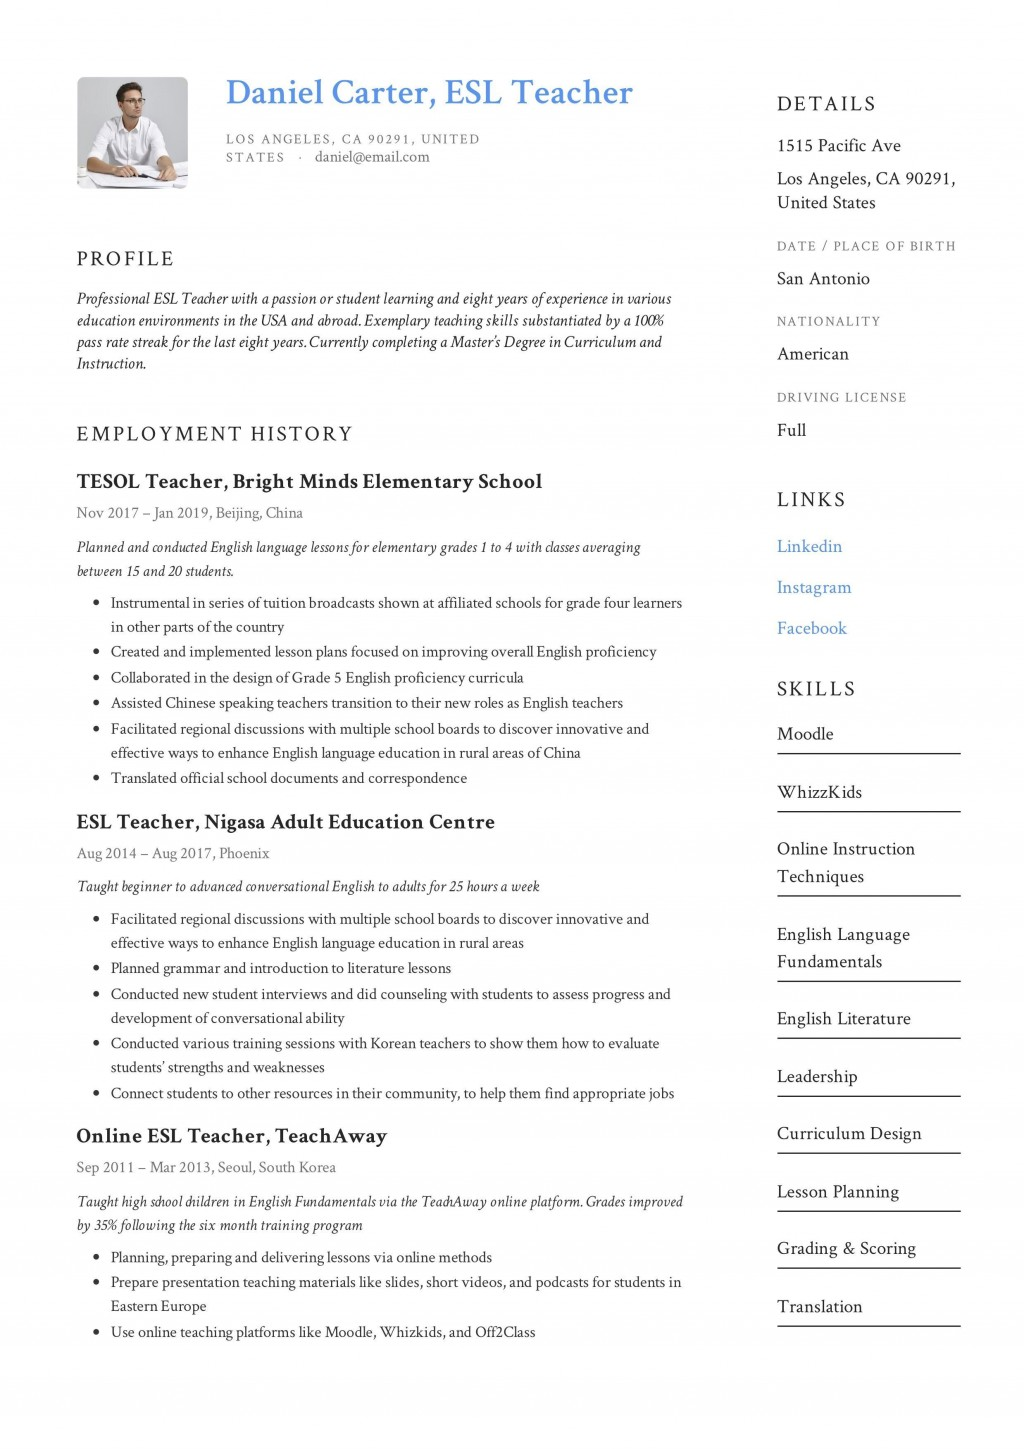 001 Archaicawful Resume Template For Teaching Job Example  Sample Cv In India Format TeacherLarge